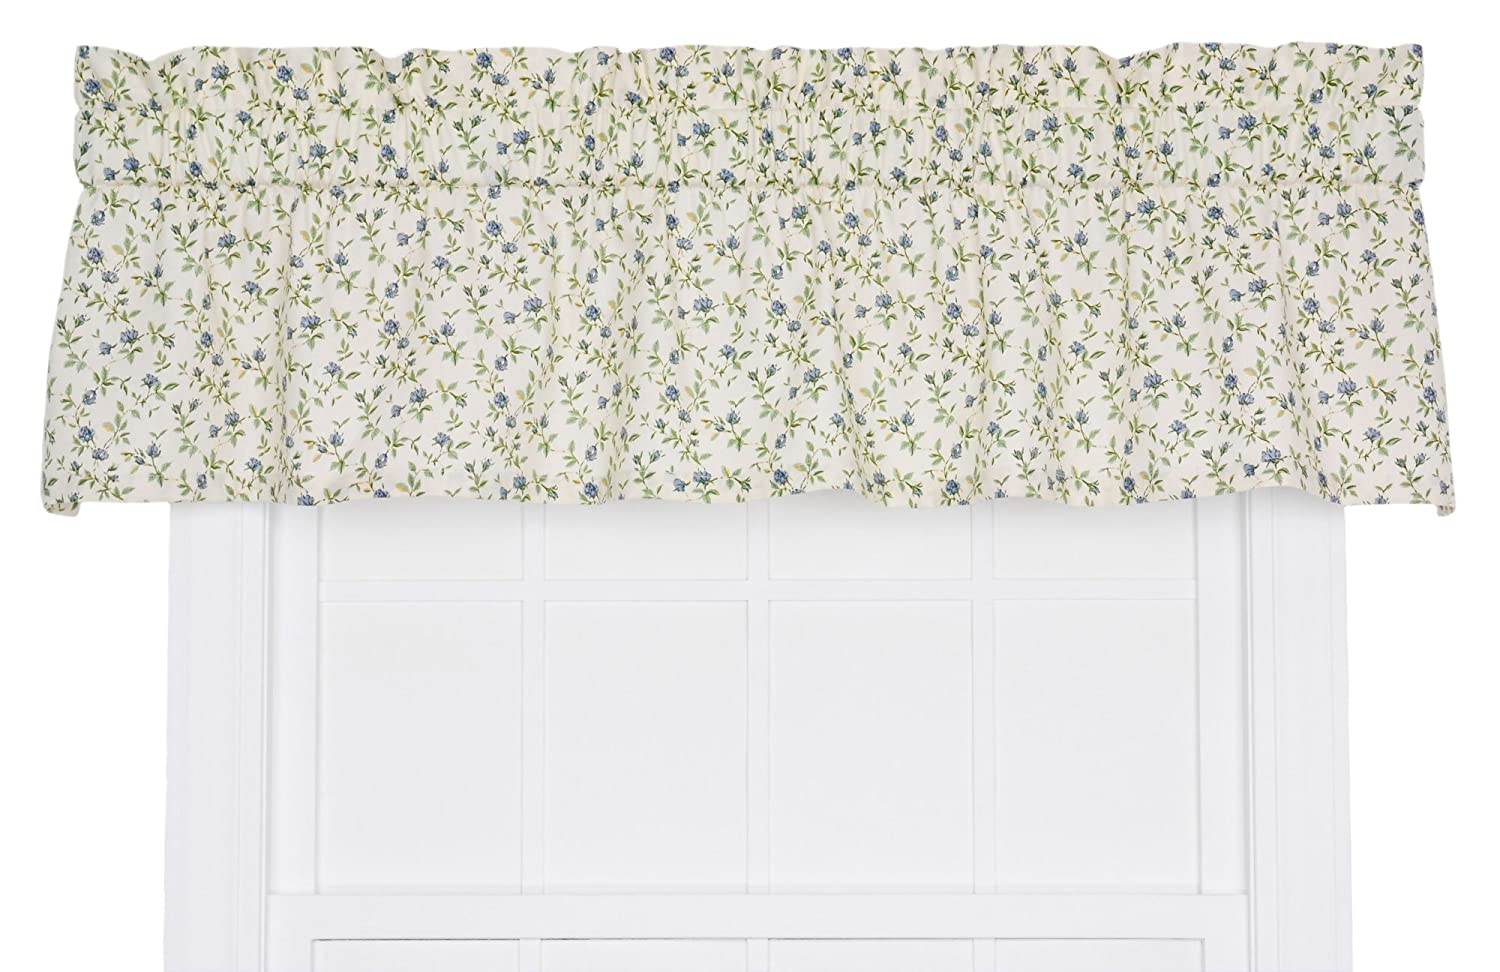 Ellis Curtain Marcia Floral Vine Print Tailored Window Treatment Valance, 70 by 12-Inch, Blue